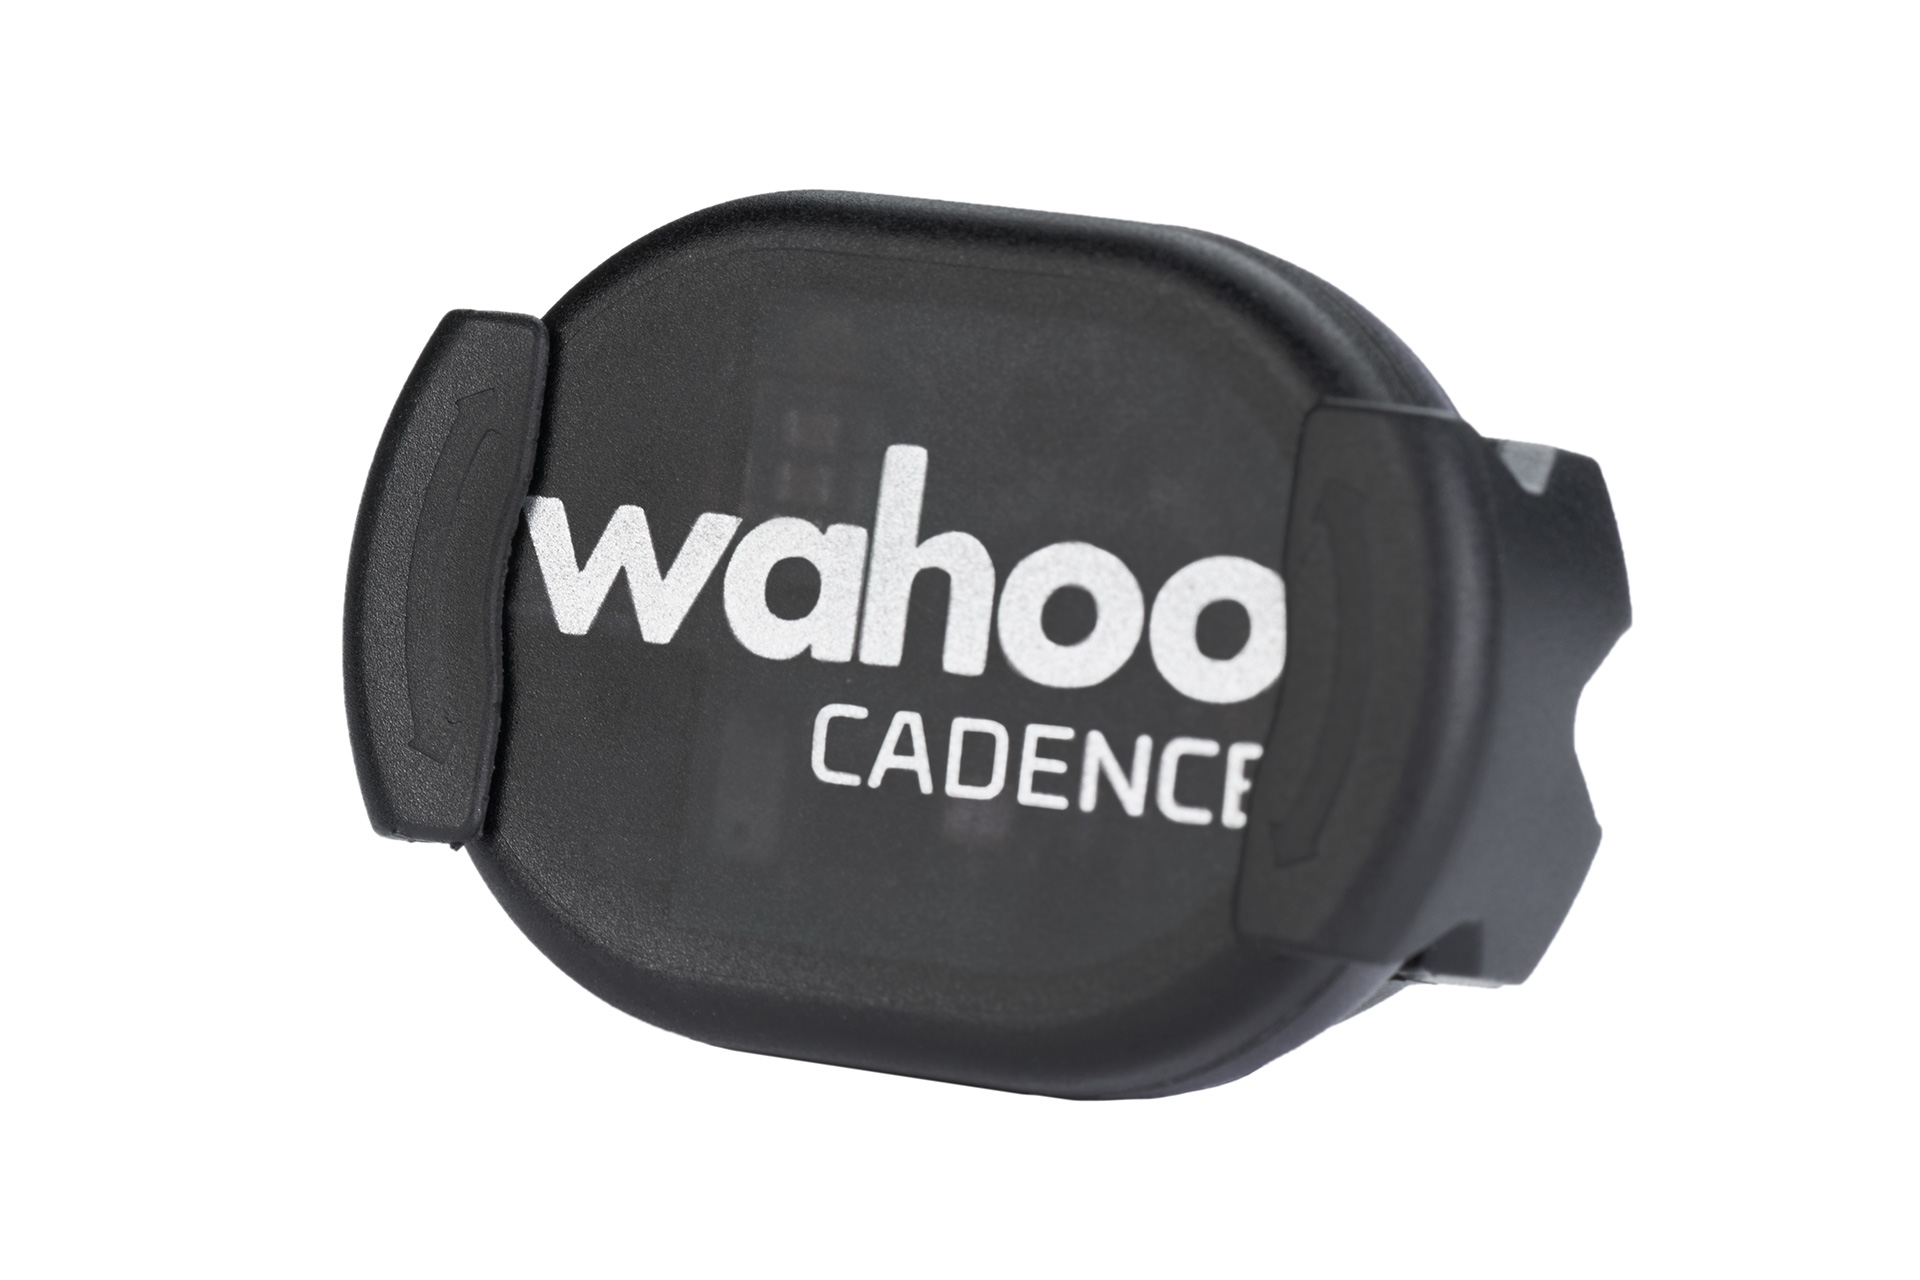 Wahoo-RPM Cadence-Picture-02